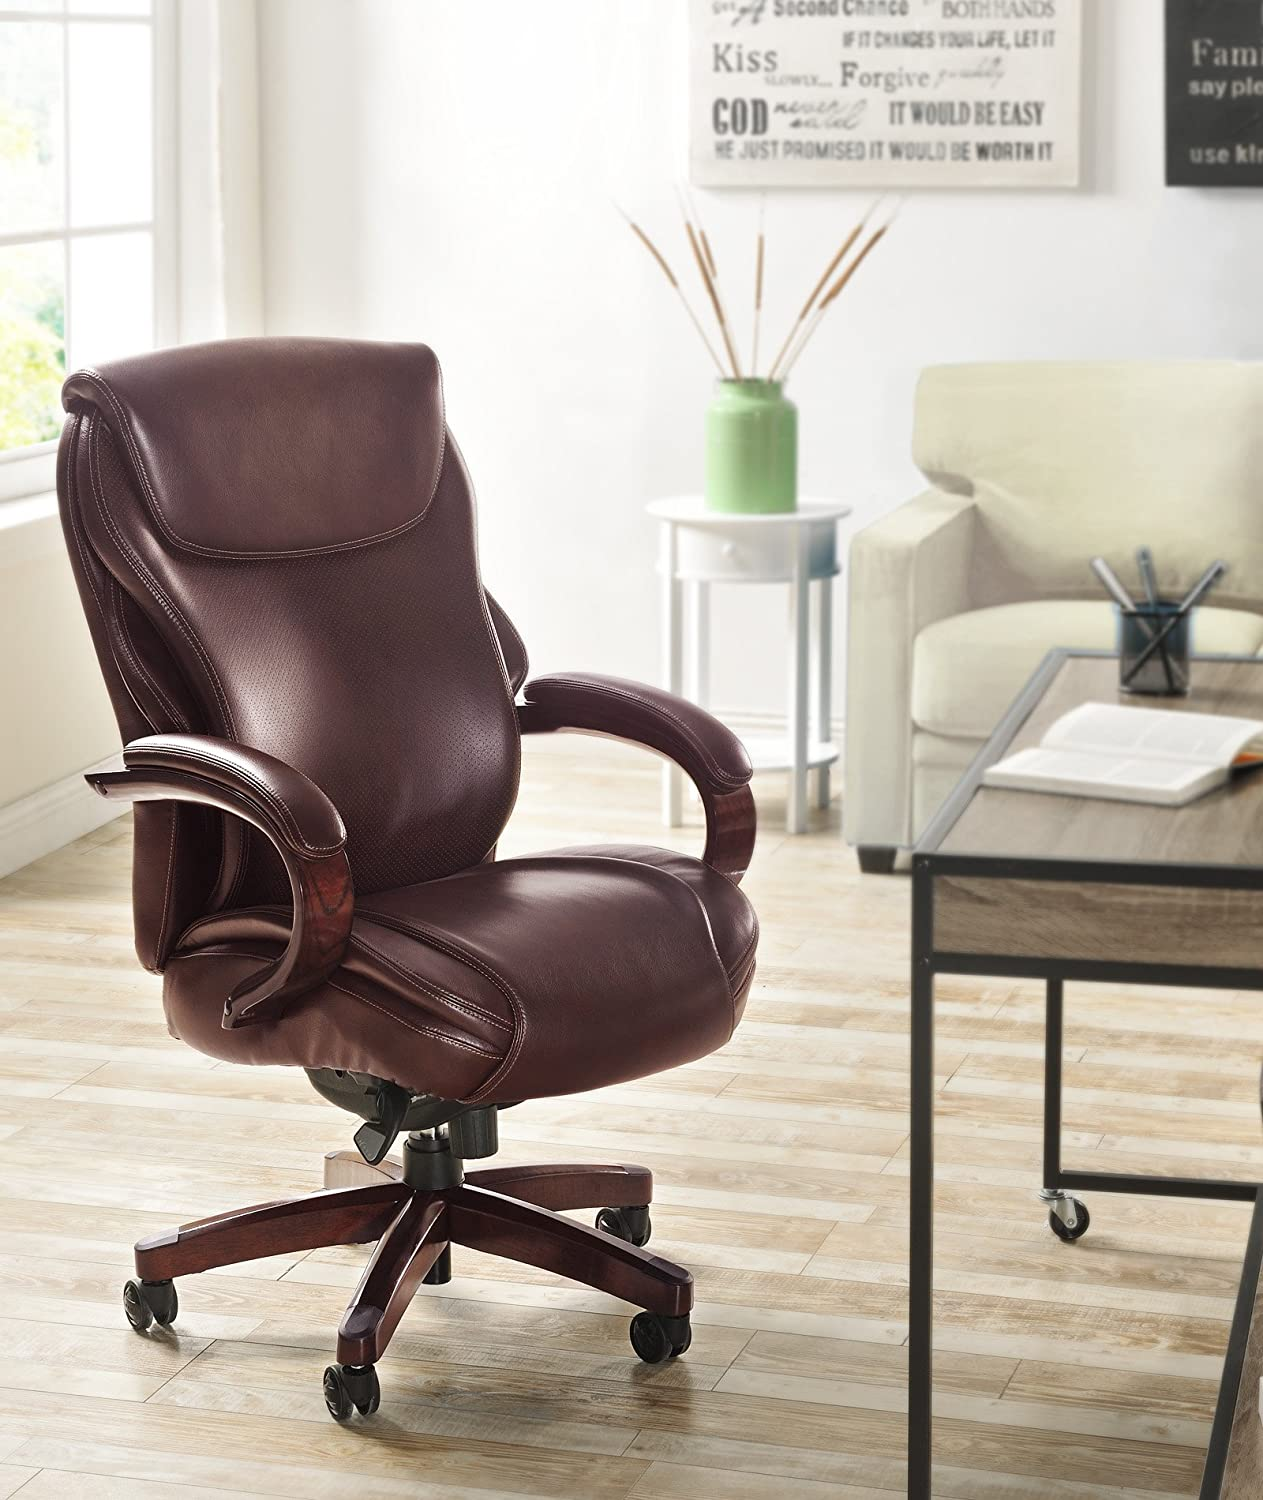 amazoncom lazboy hyland executive bonded leather office chair coffee brown kitchen u0026 dining - Leather Office Chairs